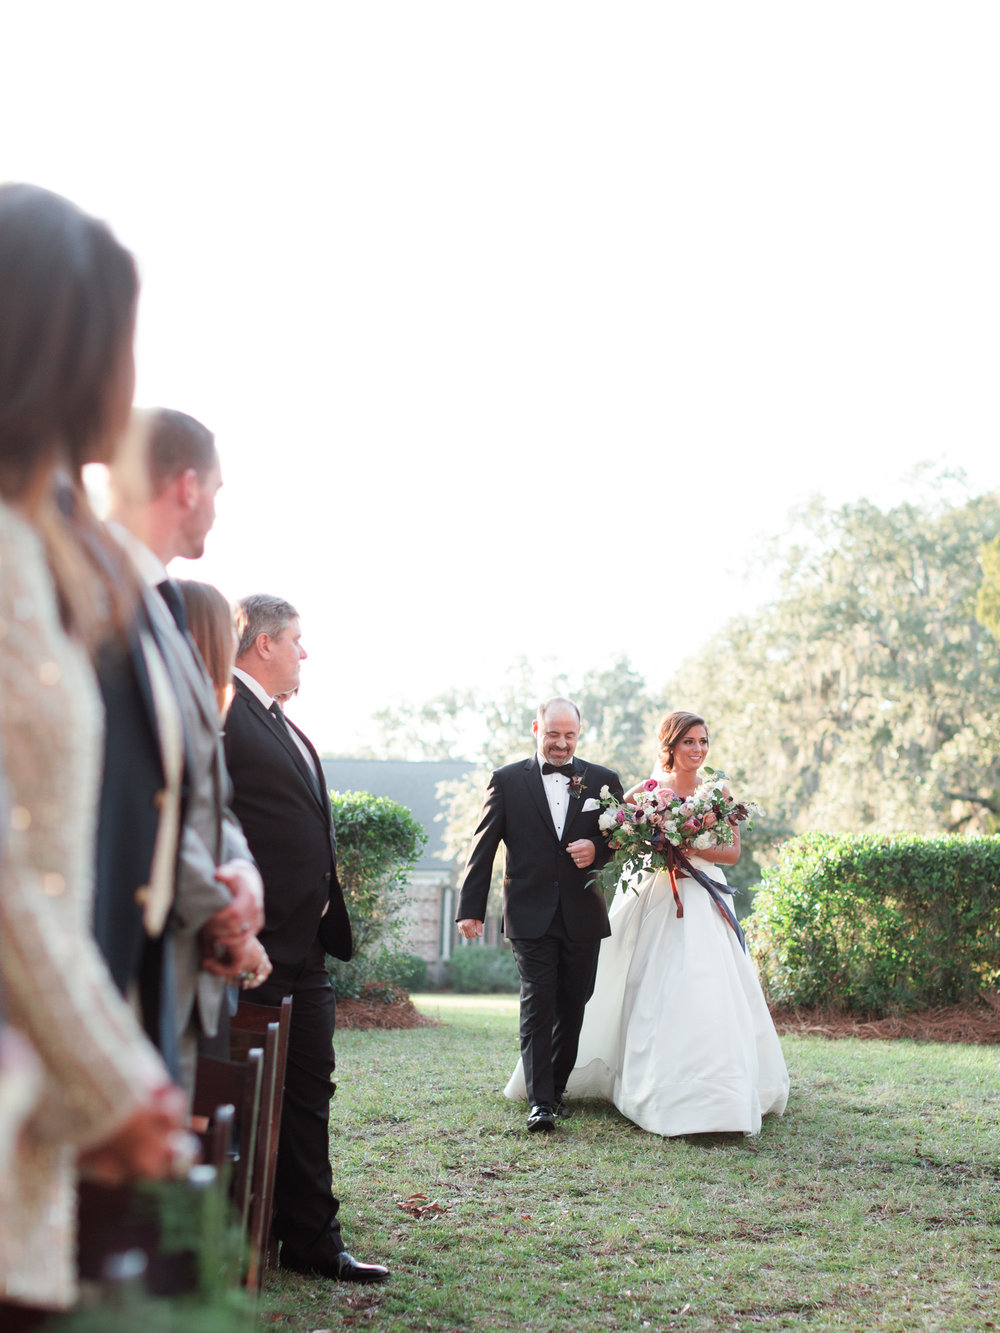 Charleston-Wedding-Photographer-82.jpg